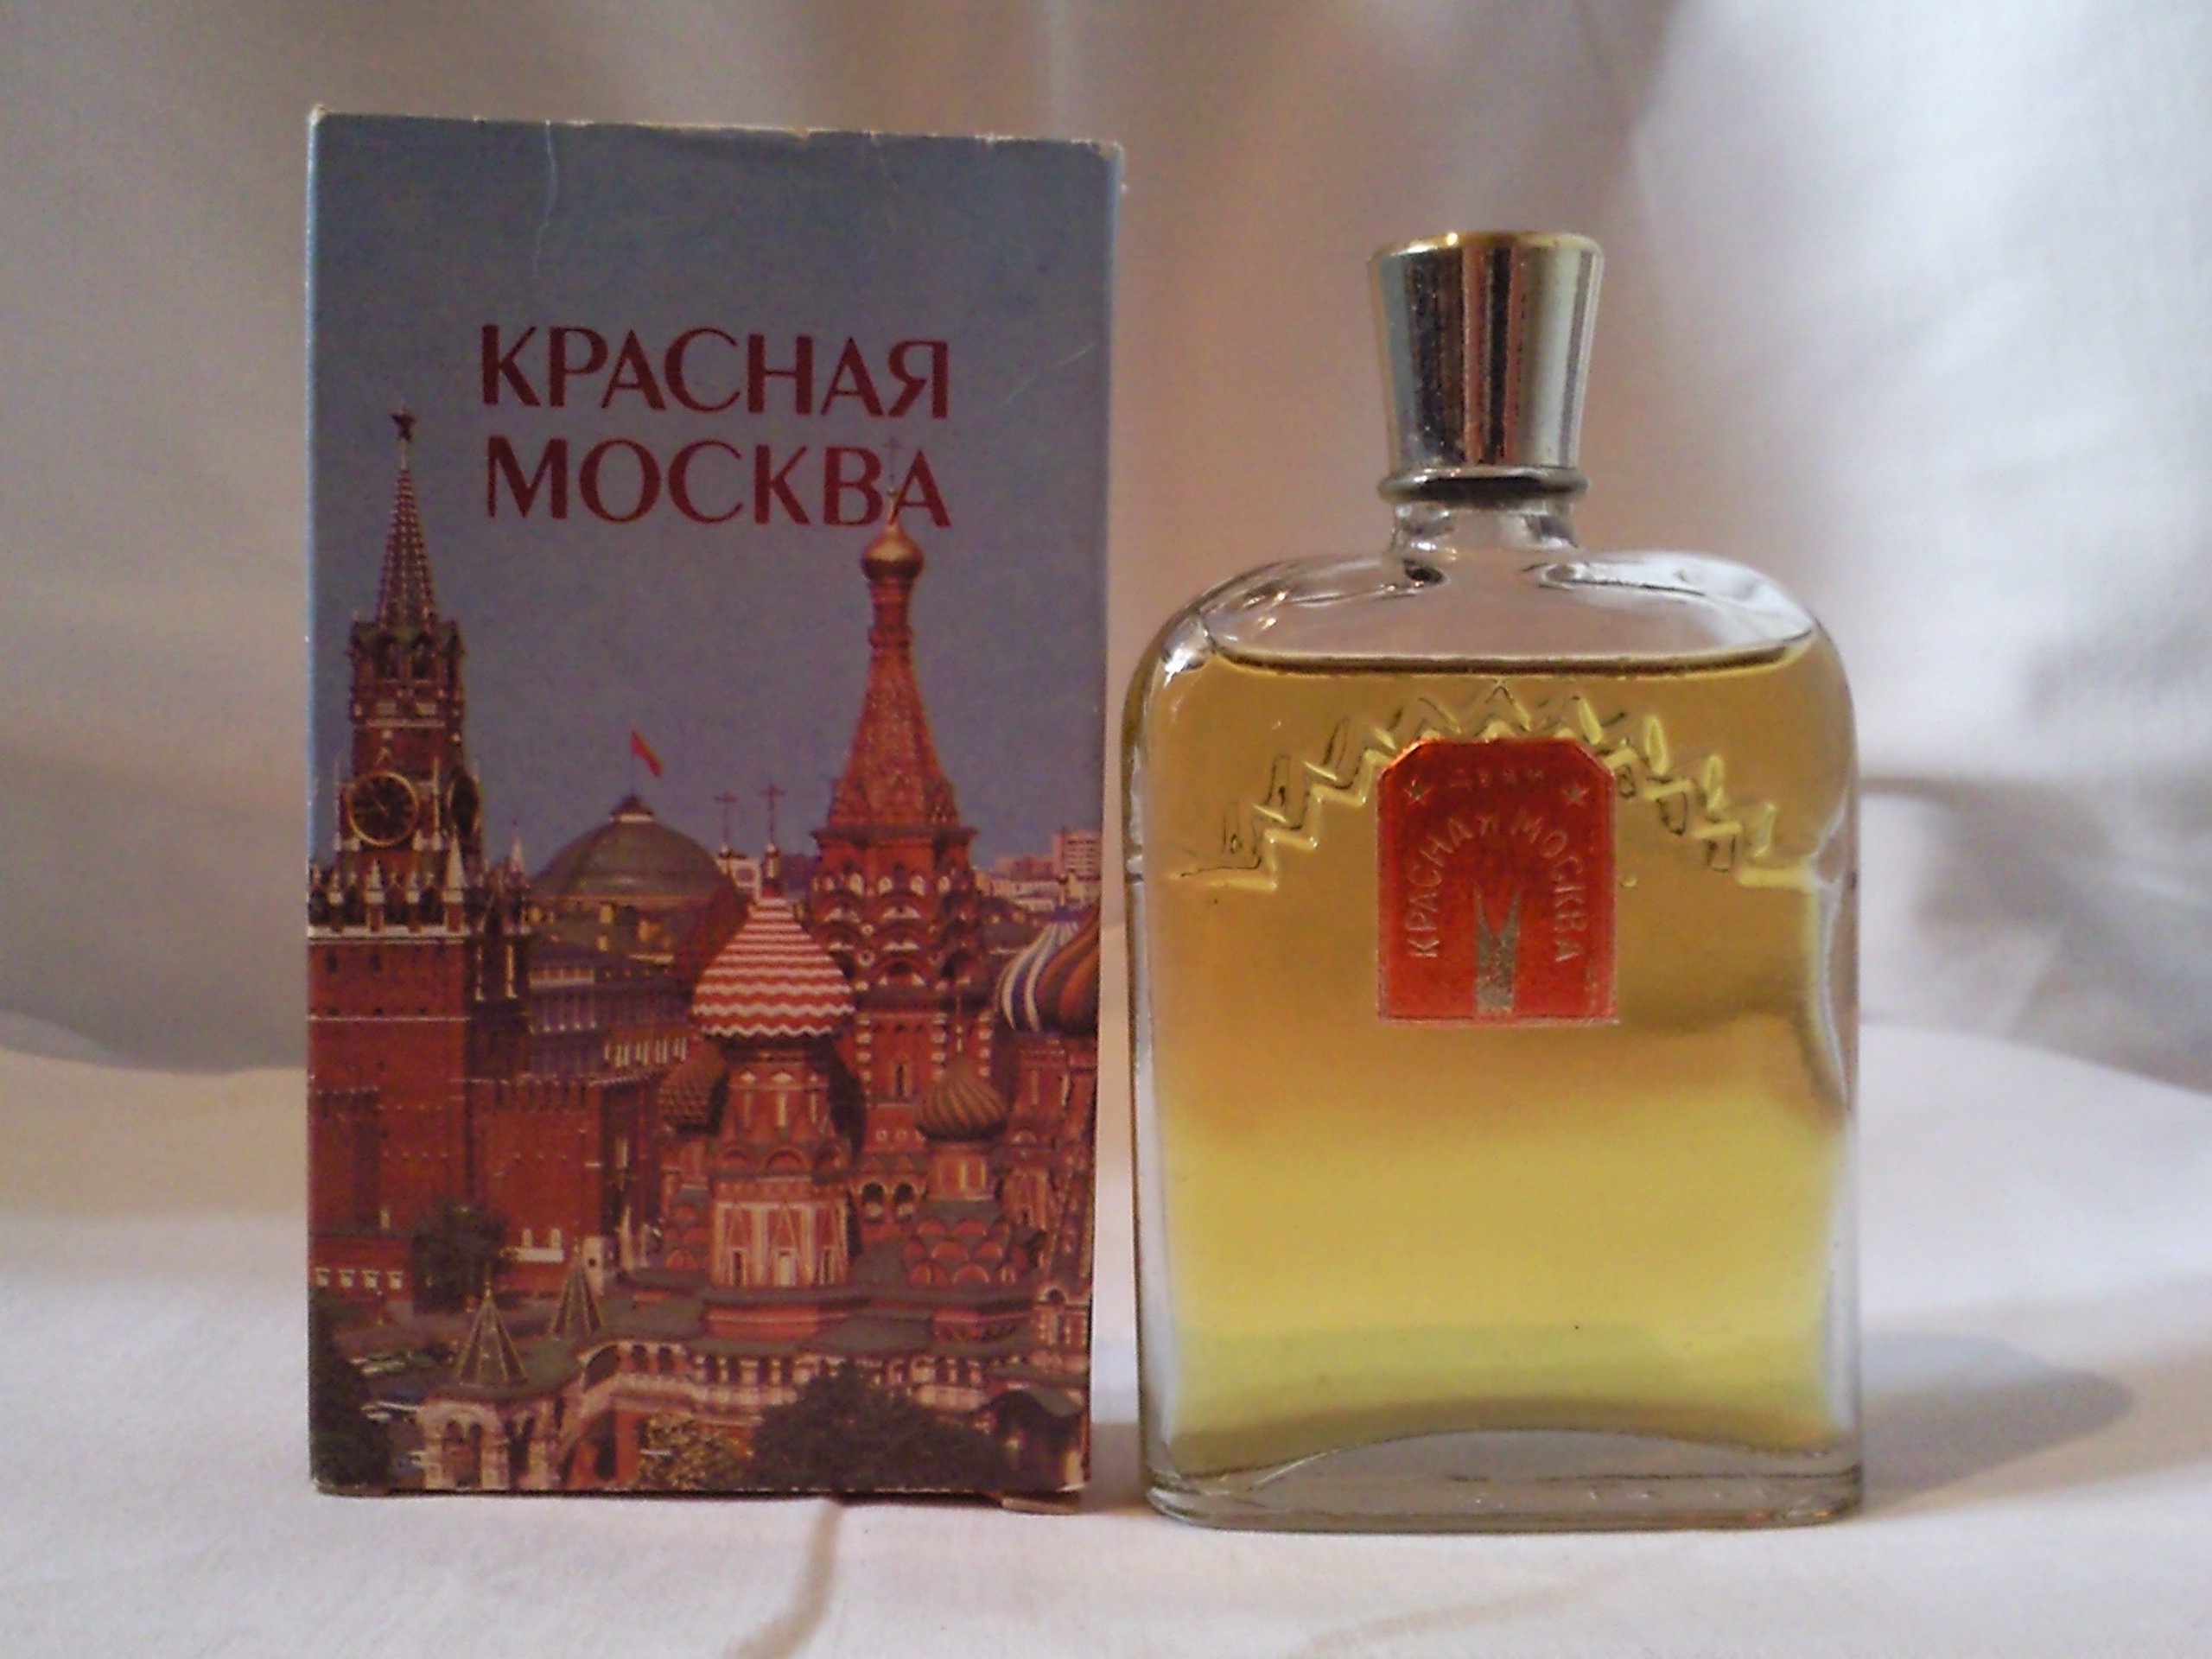 Opinion: Gosha Rubchinskiy's new perfume is a sign of the times for underground culture